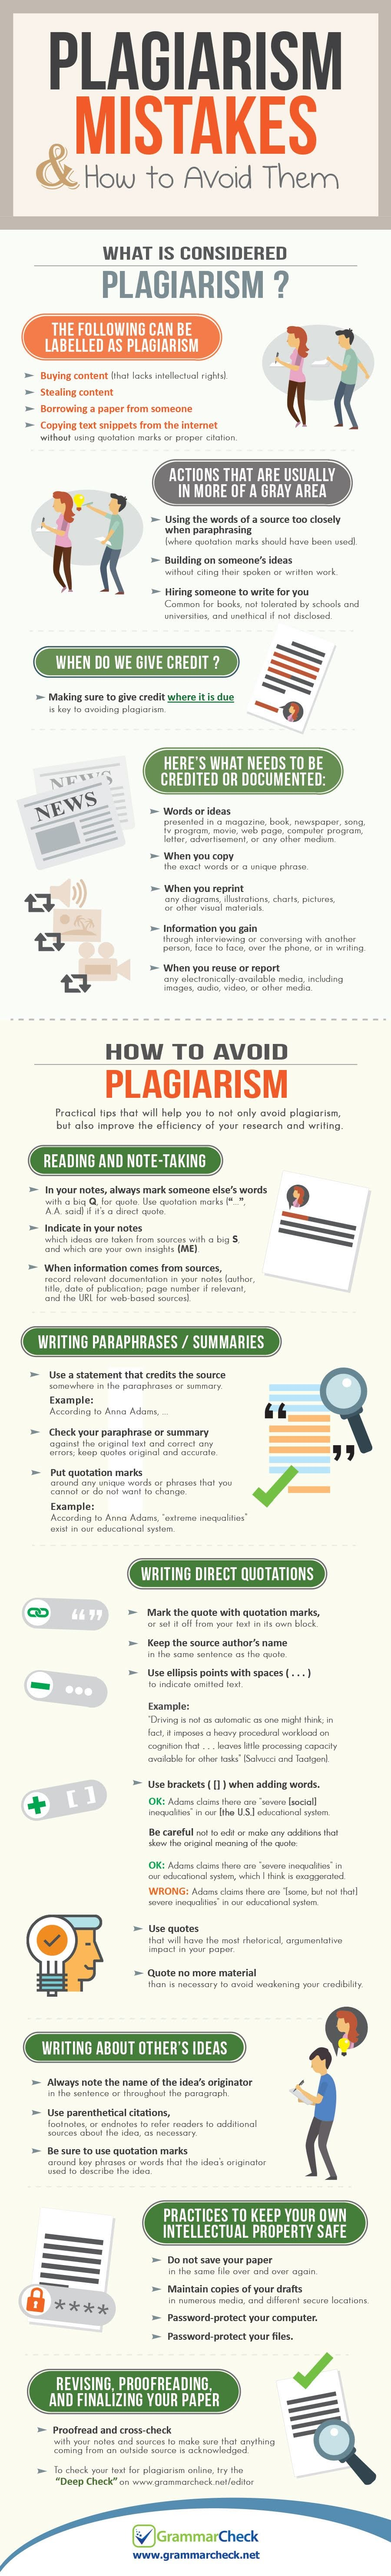 Plagiarism Mistakes And How to Avoid Them #Infographic